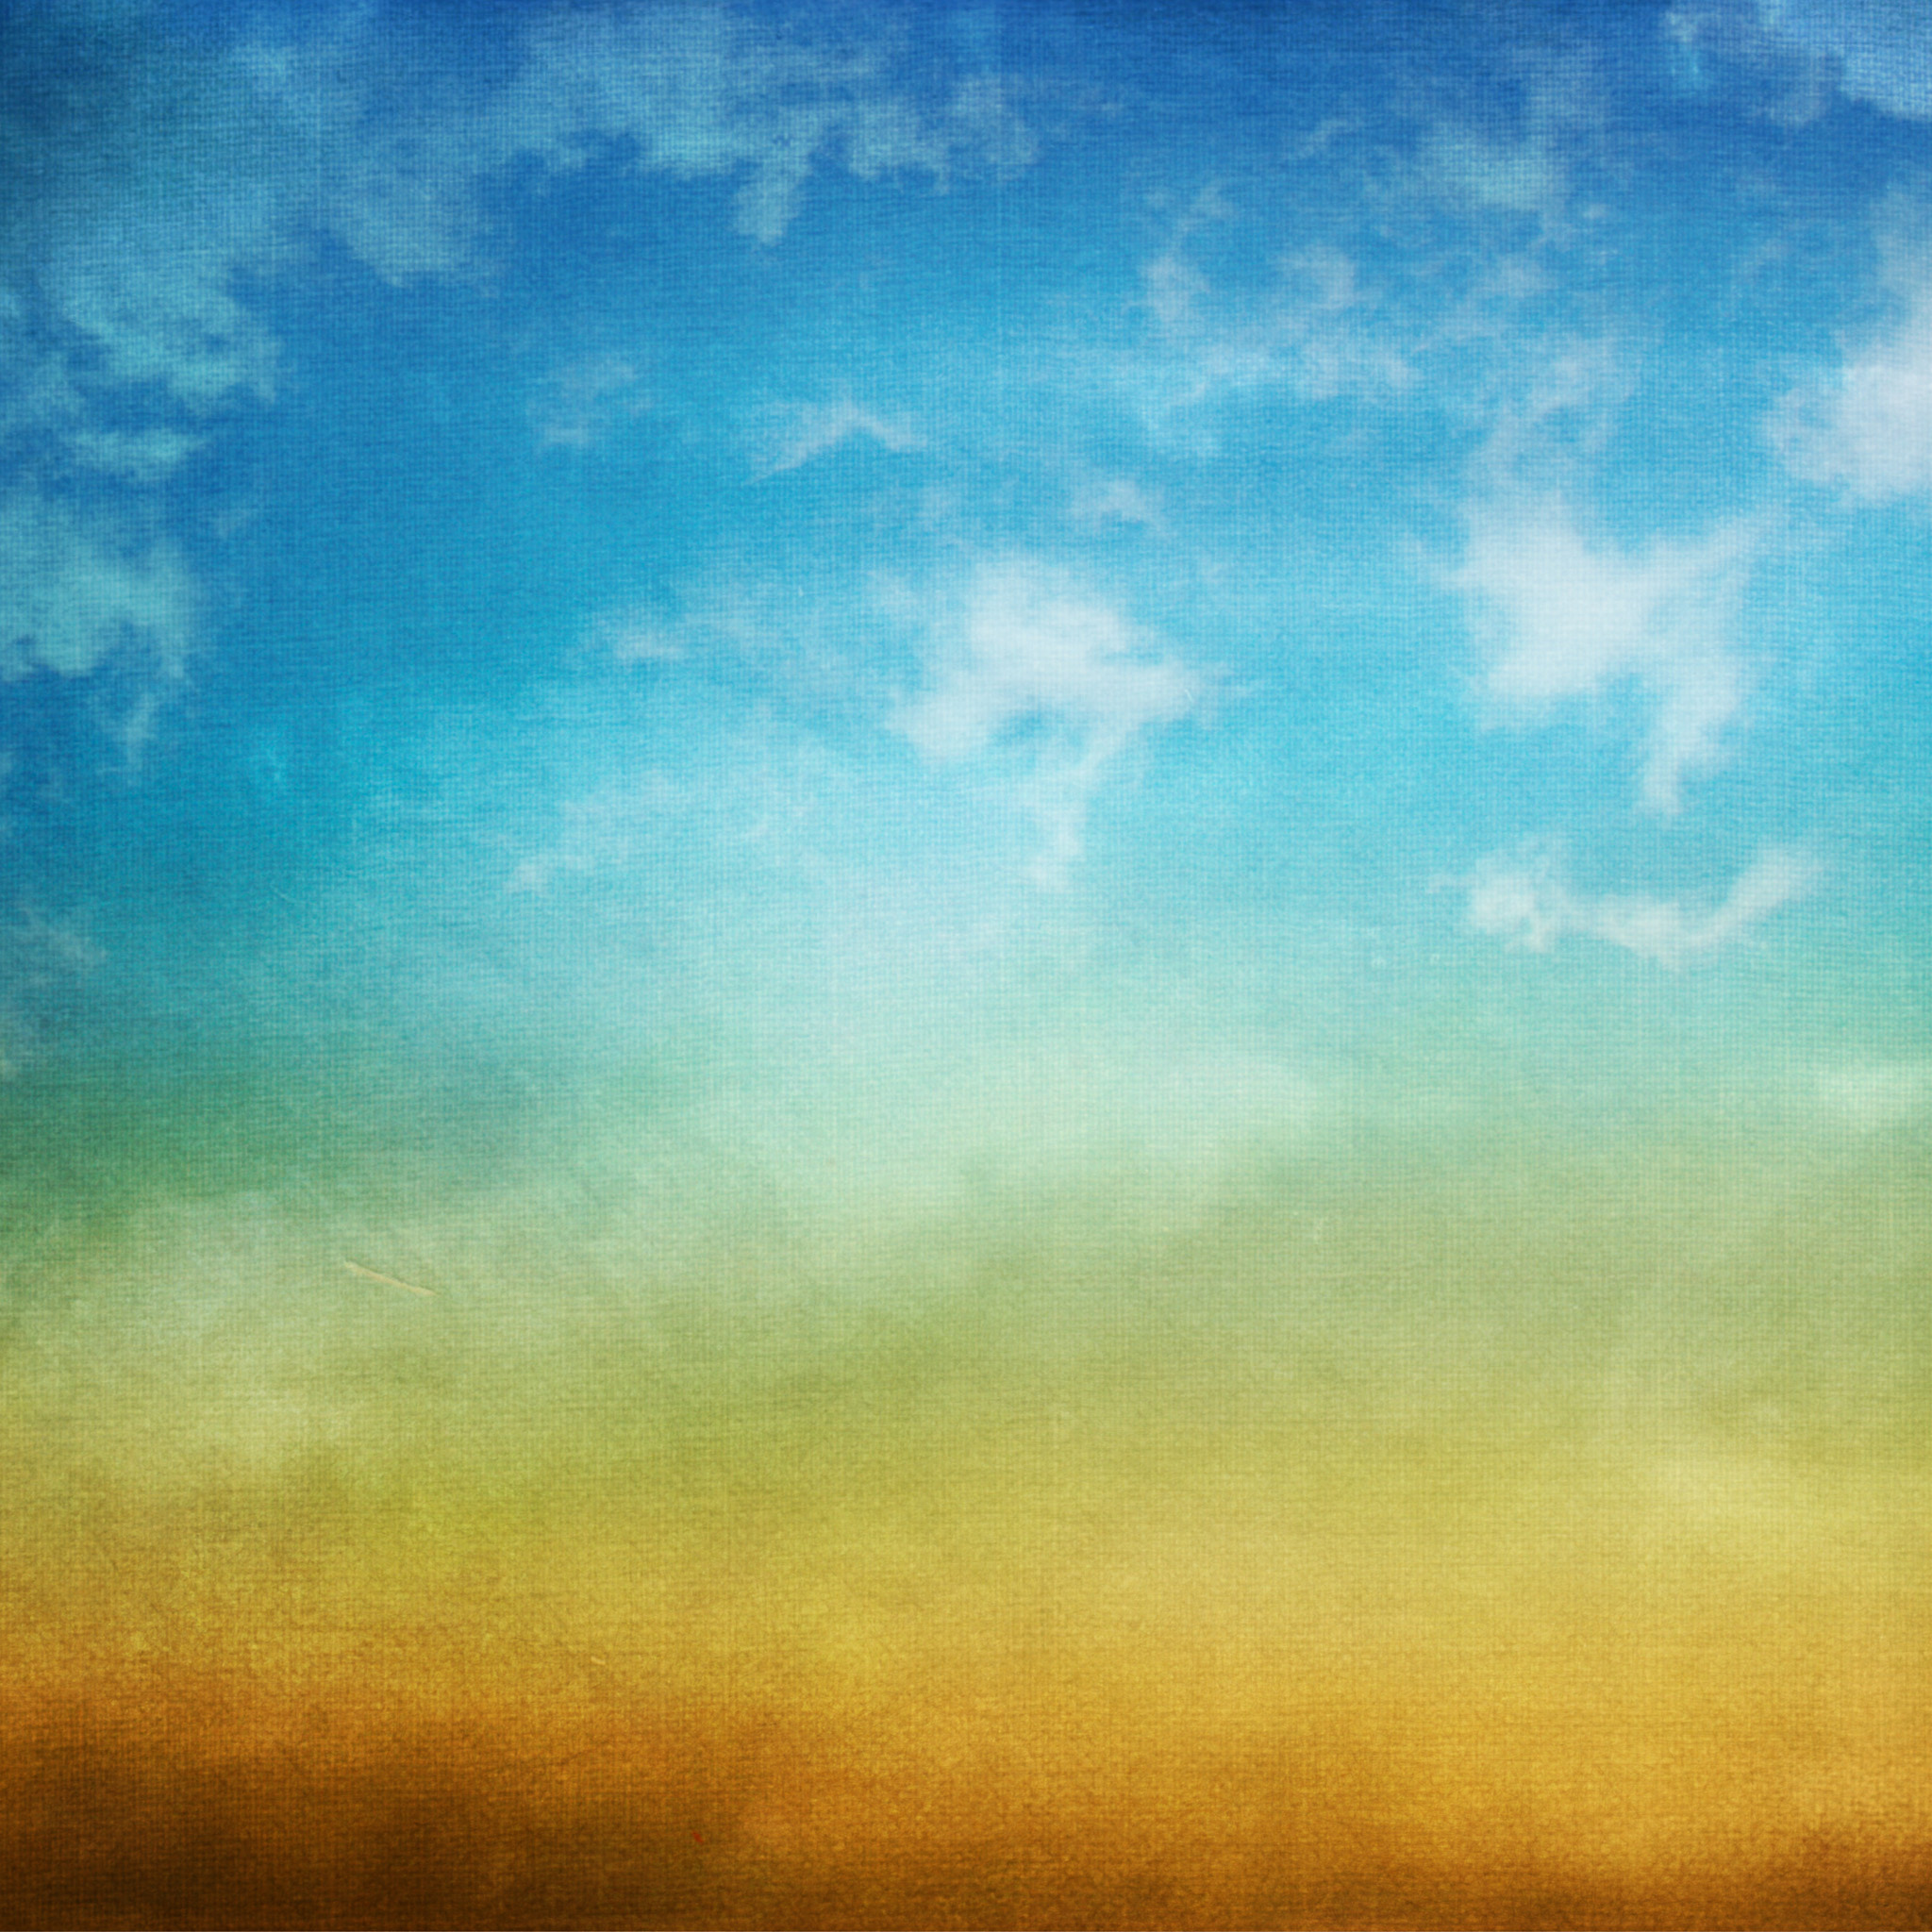 elne - abstract sky ipad wallpaper